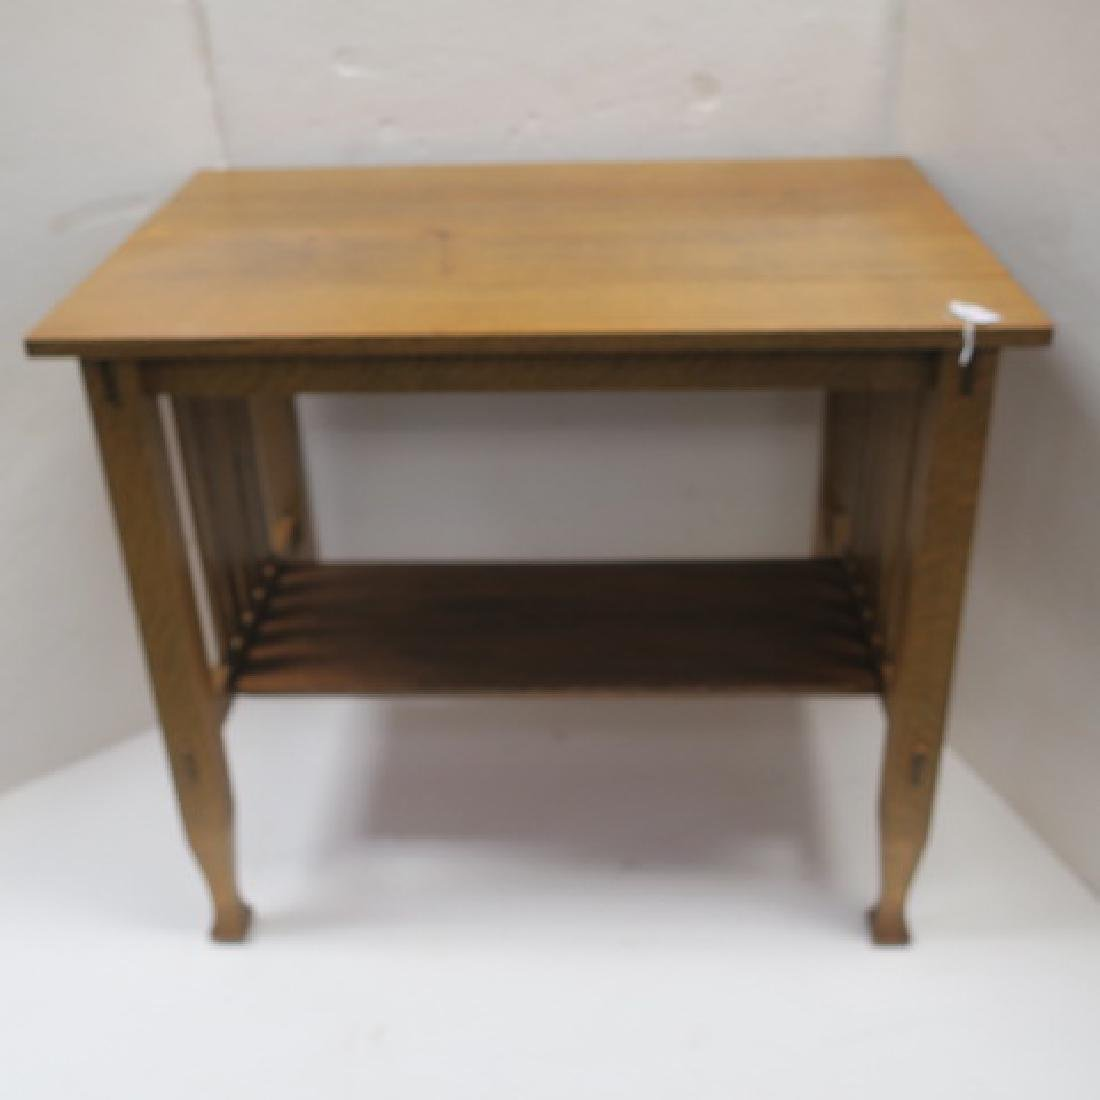 Golden Oak Arts & Crafts Table: